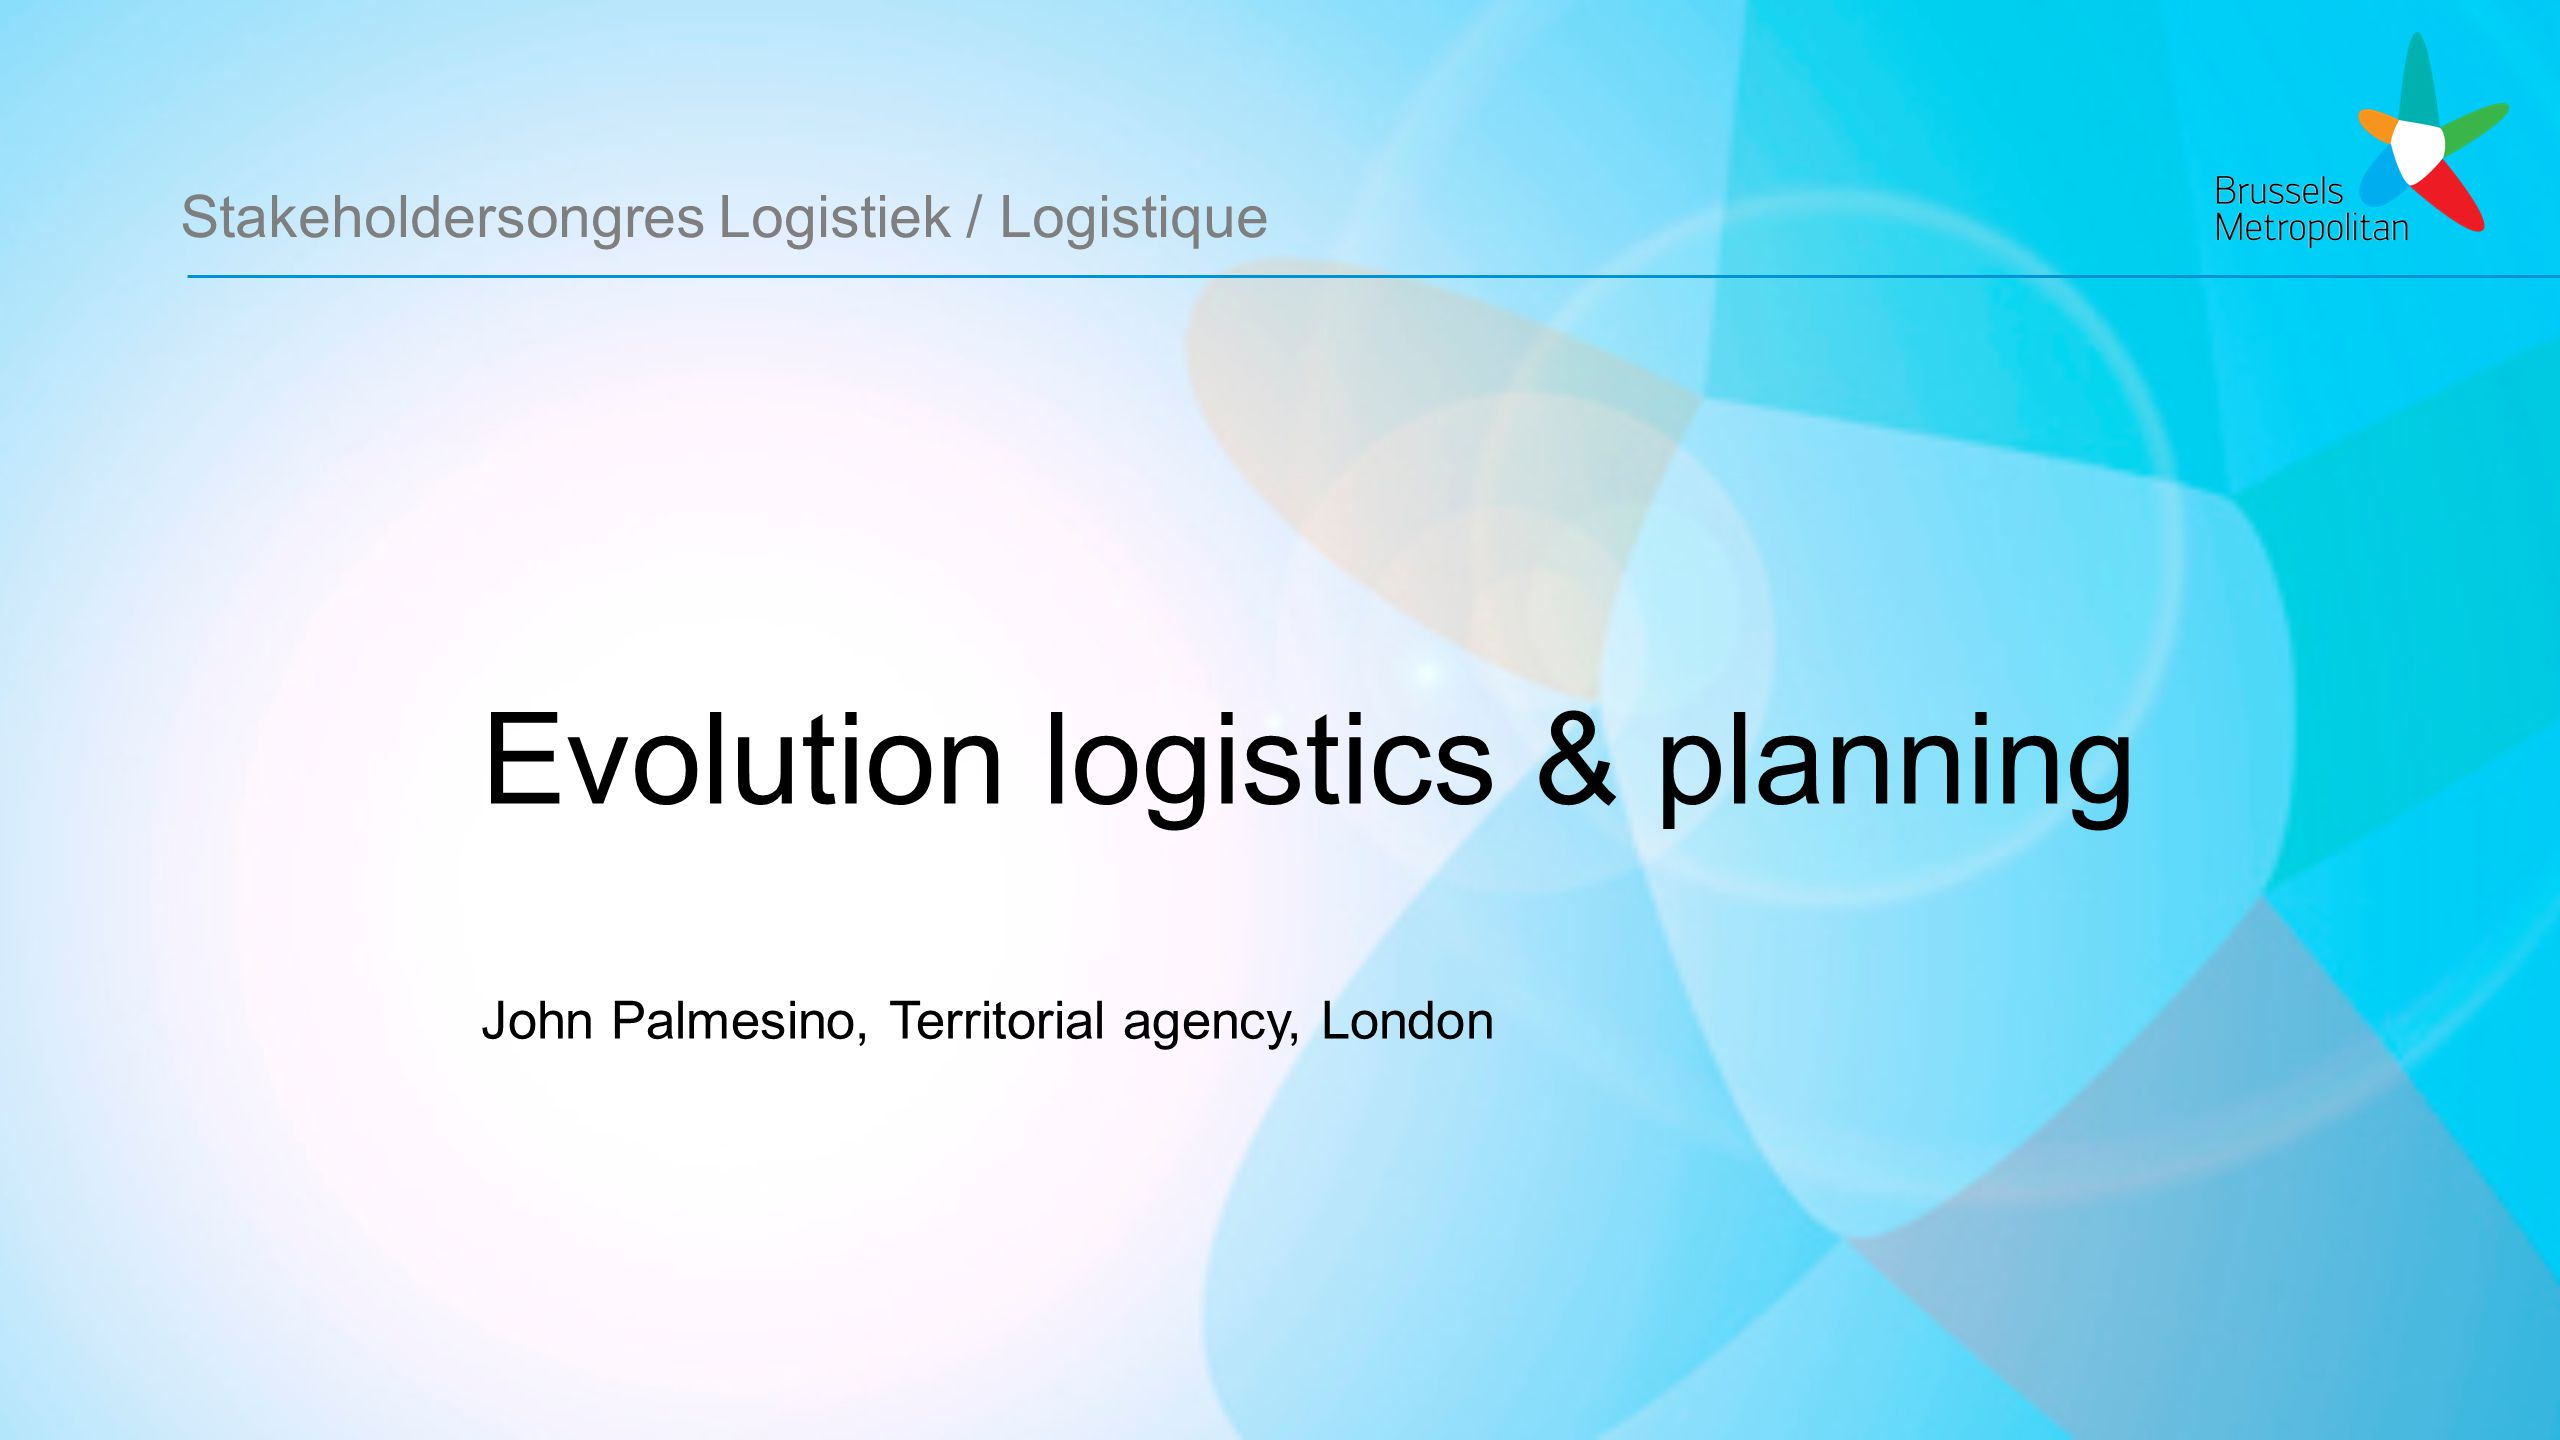 Stakeholdersongres Logistiek / Logistique Evolution logistics & planning John Palmesino, Territorial agency, London